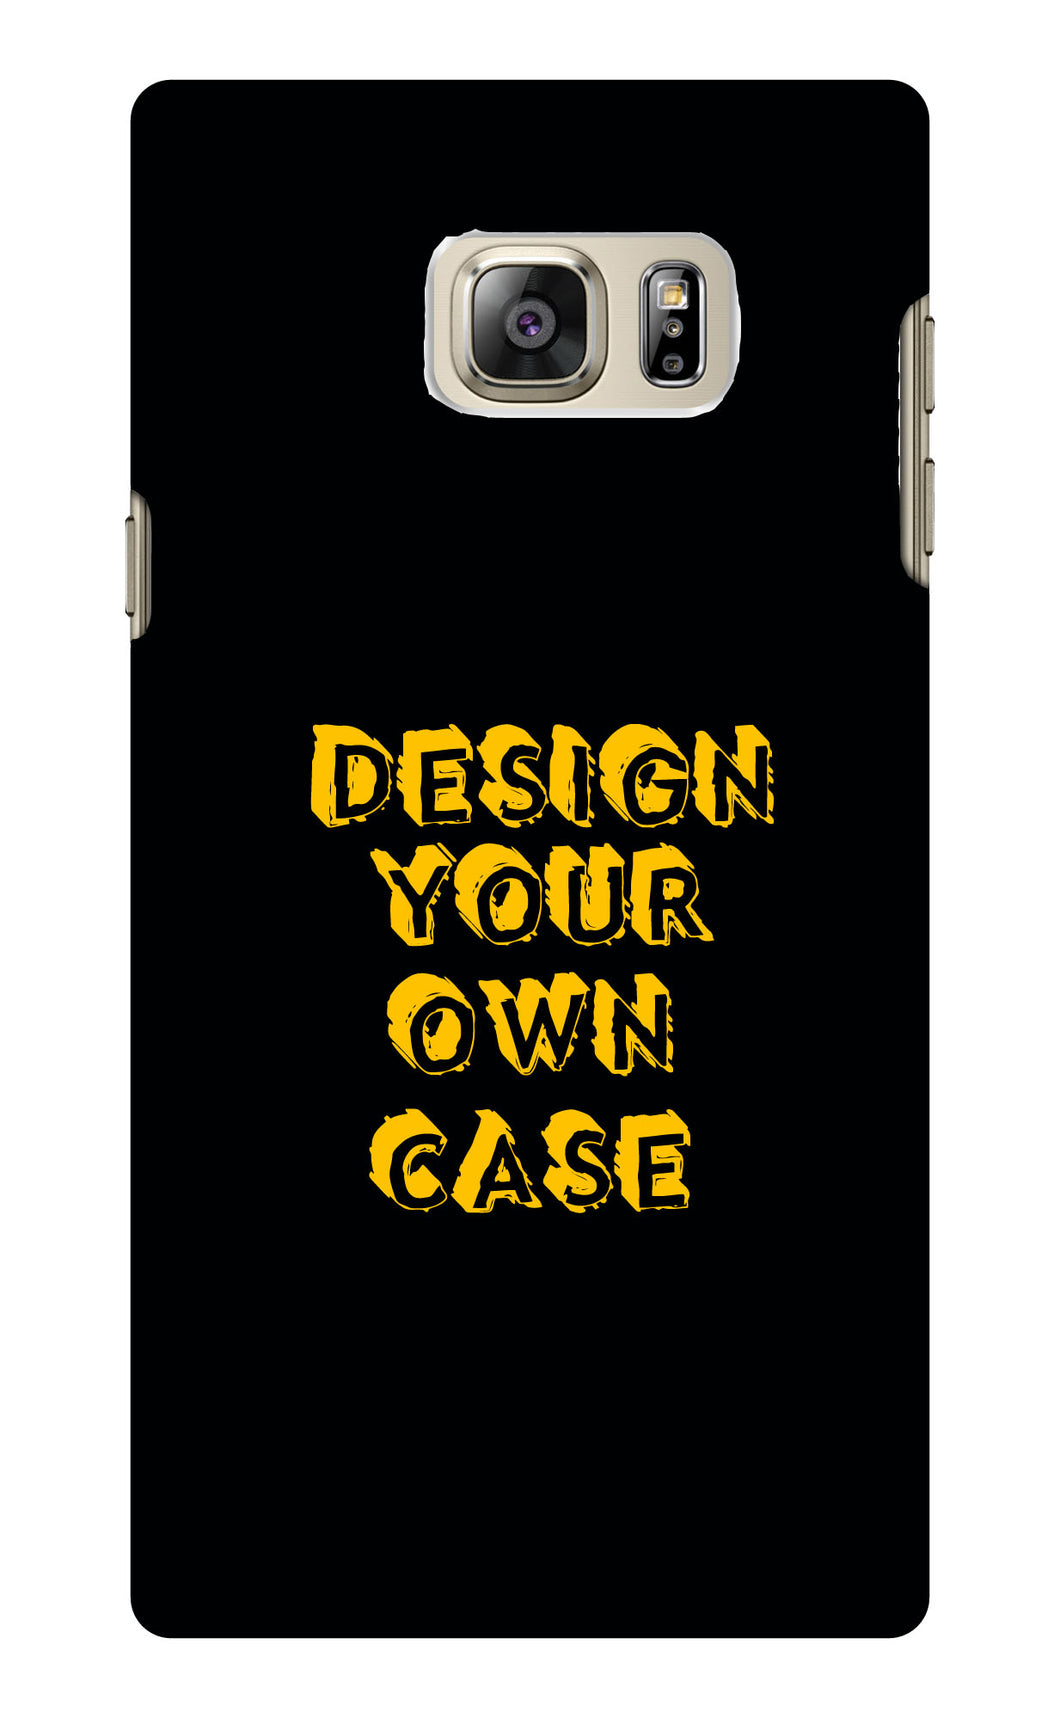 Design Your Own Case for Samsung Galaxy note 5